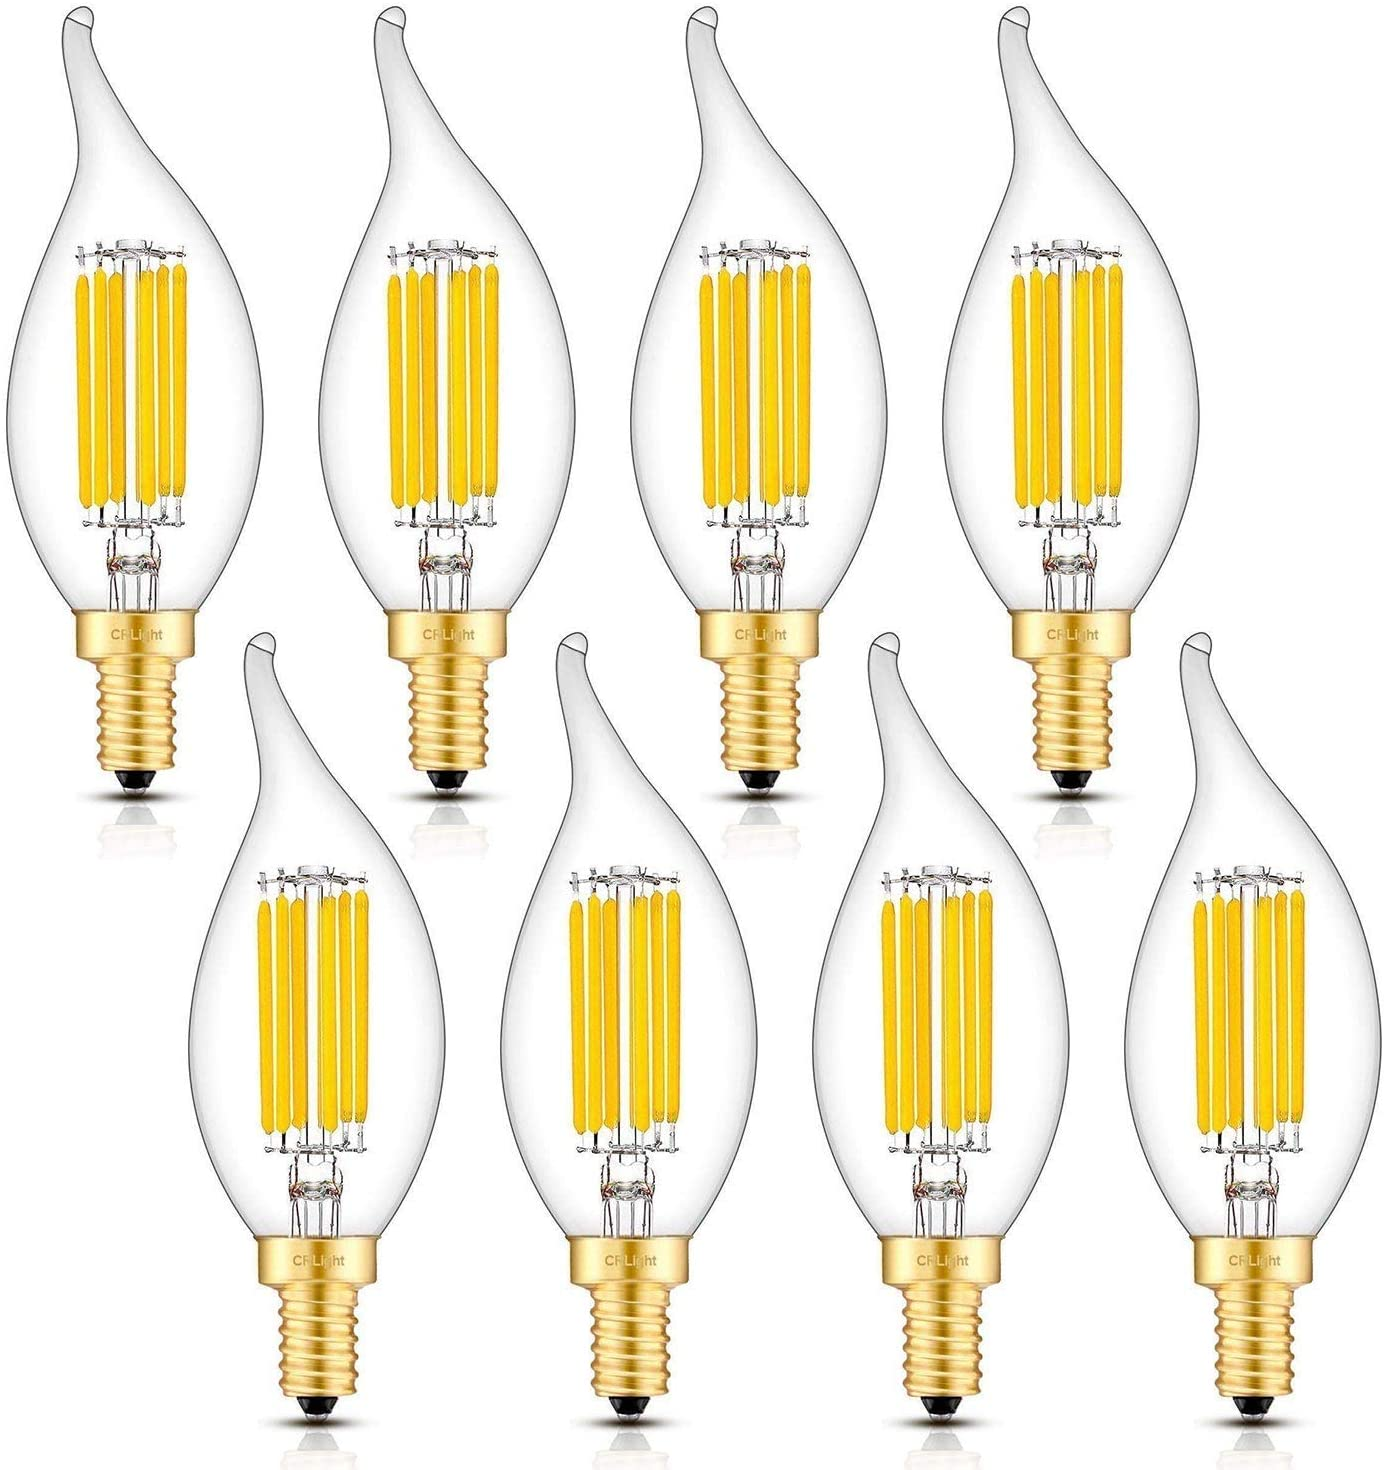 CRLight 6W LED Candelabra Bulb 3000K Soft White, 70W Equivalent 700LM, E12 Base Dimmable LED Chandelier Light Bulbs, Antique Edison Style Clear Glass CA11 Candle Flame Shape Bent Tip, Pack of 8